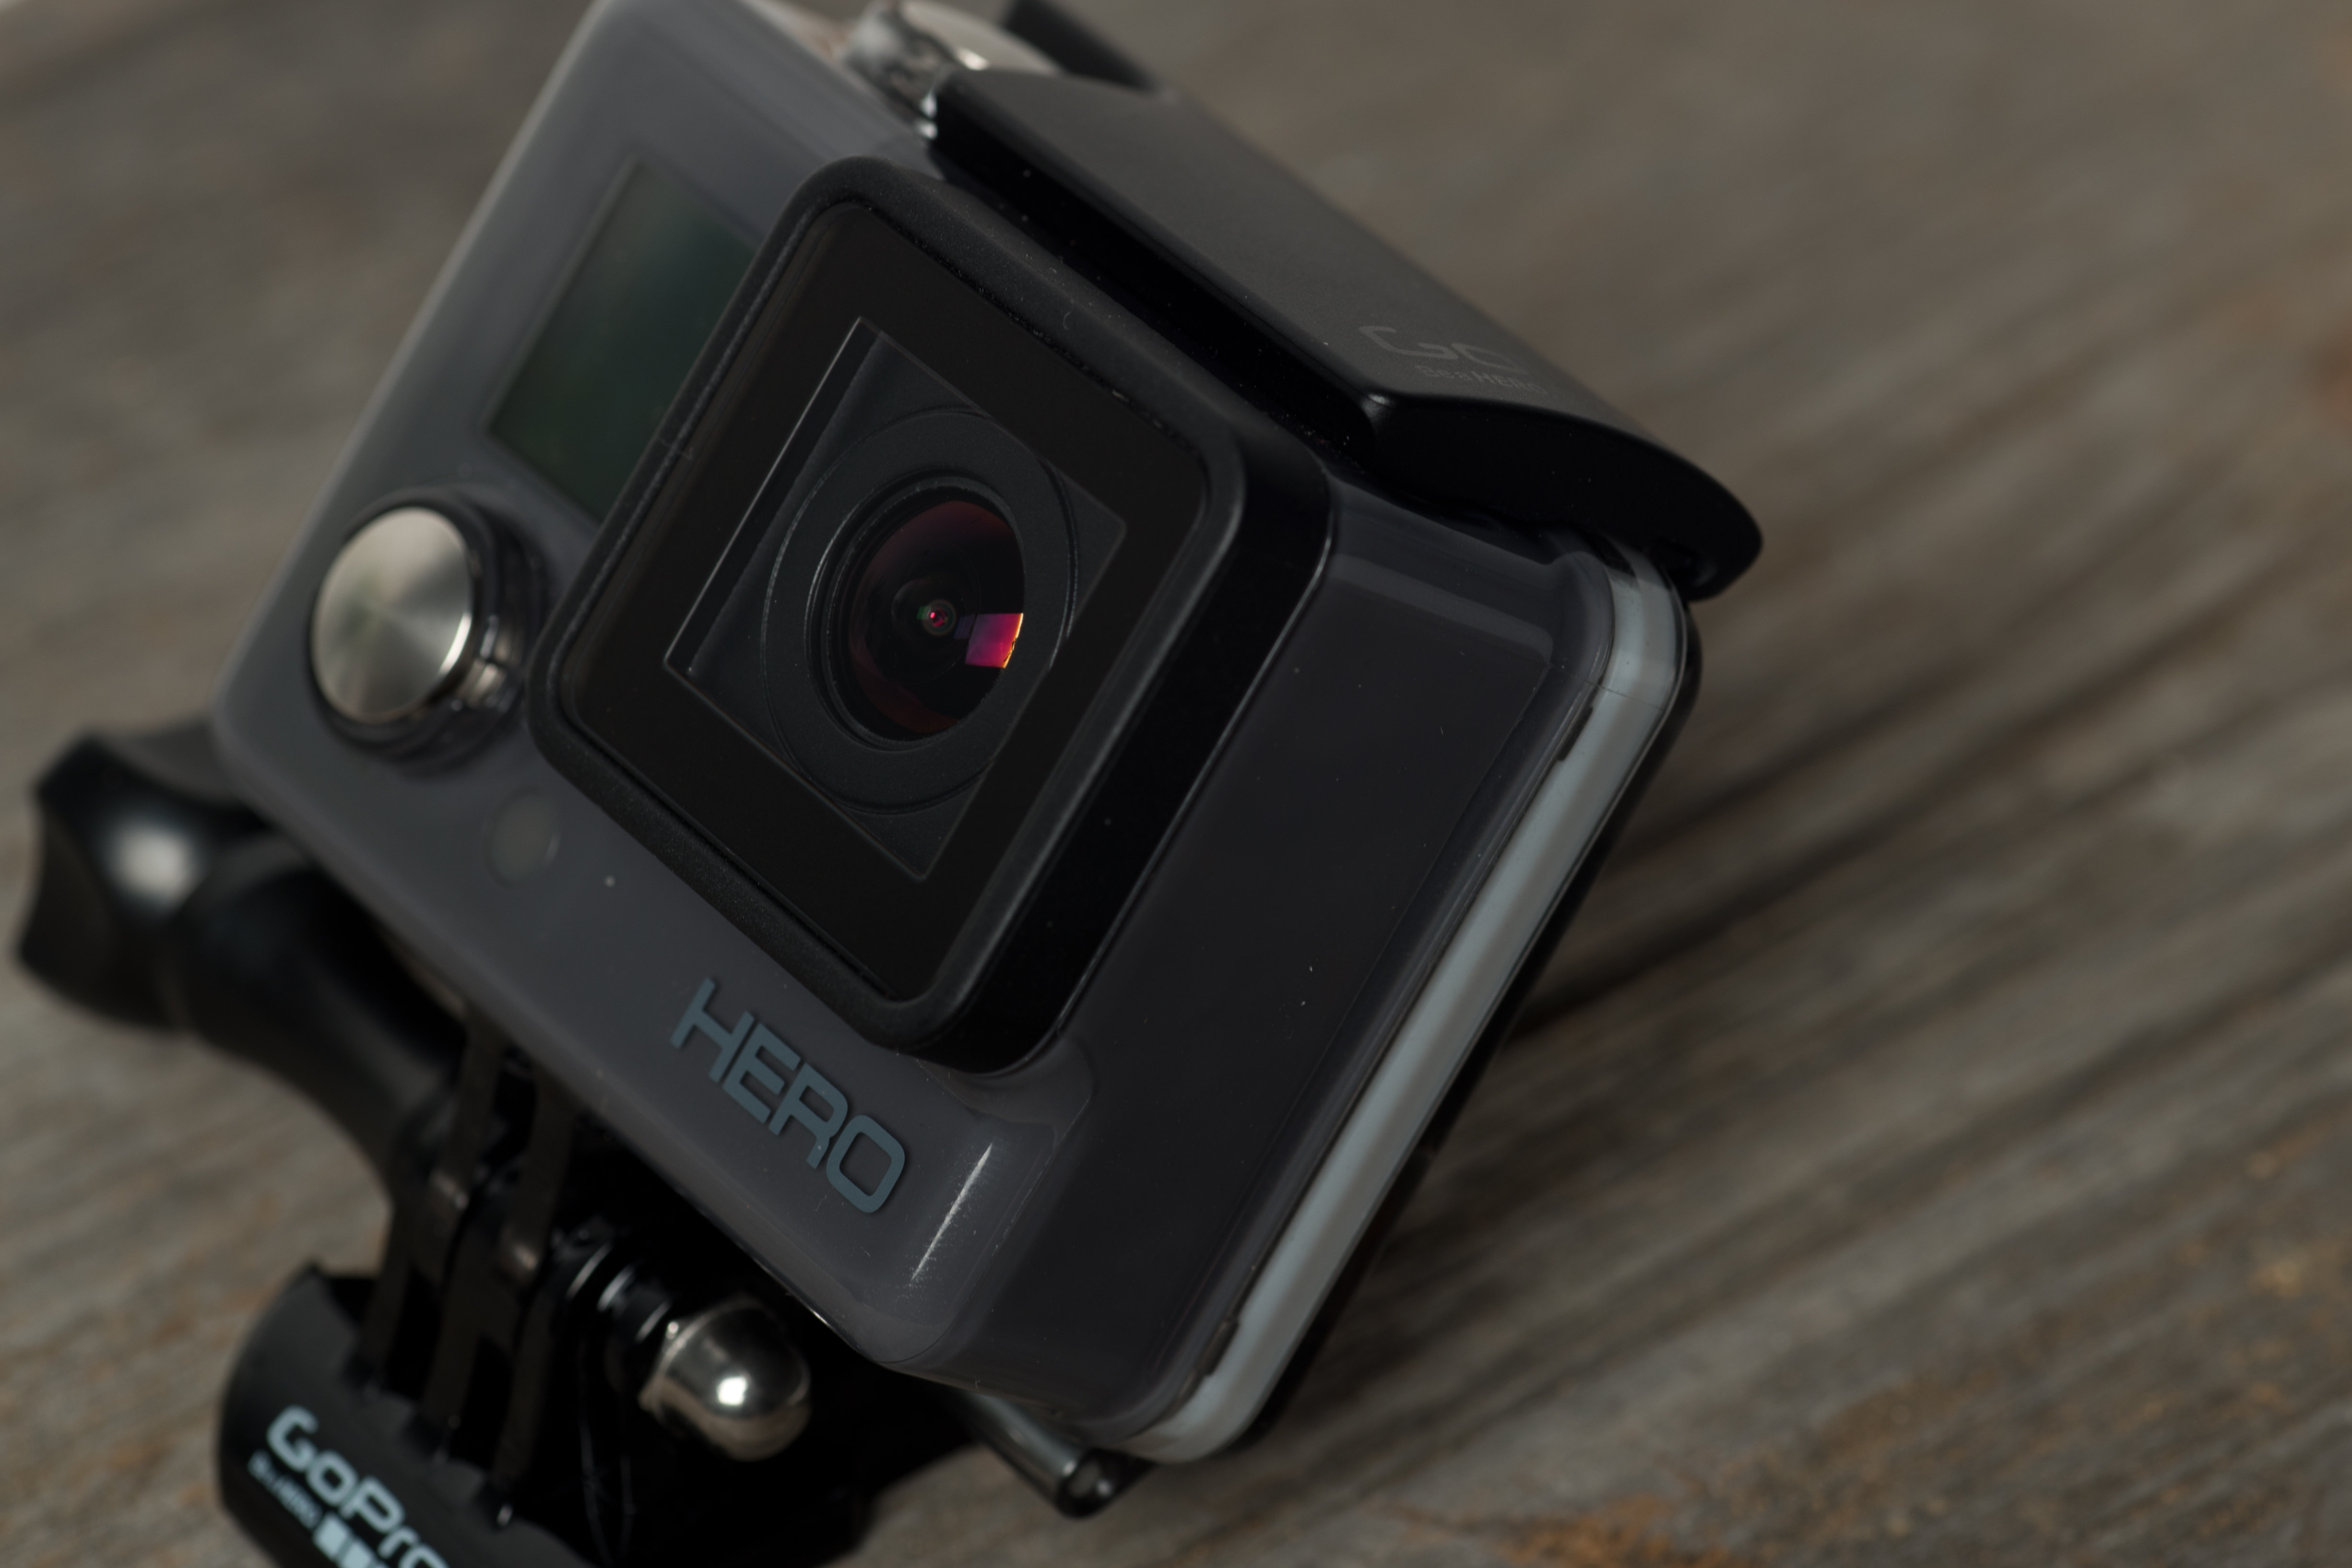 A photograph of the GoPro Hero 2014 edition's casing.